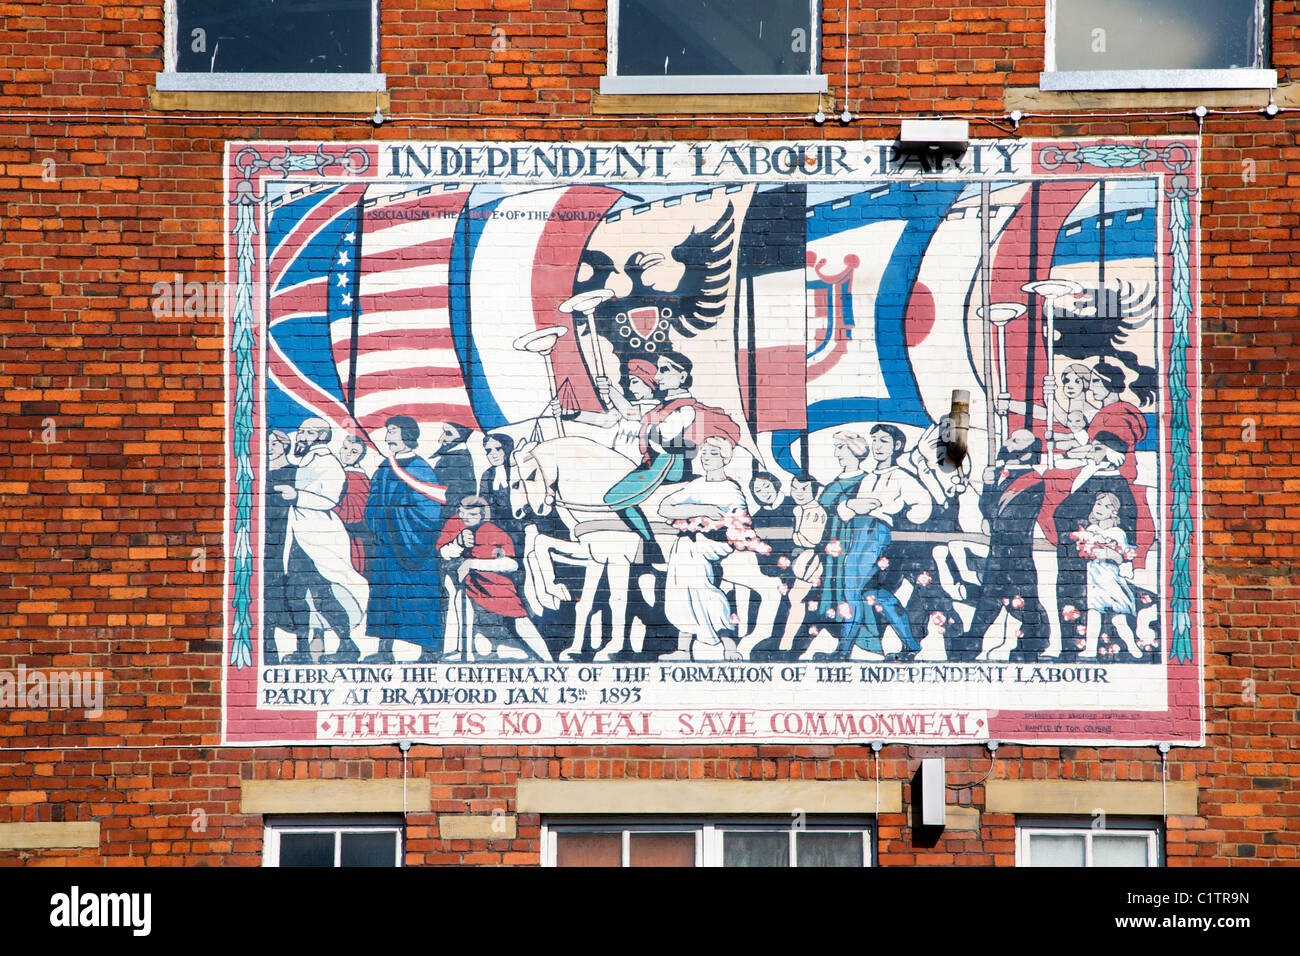 Independent Labour Party Mural Bradford West Yorkshire England - Stock Image